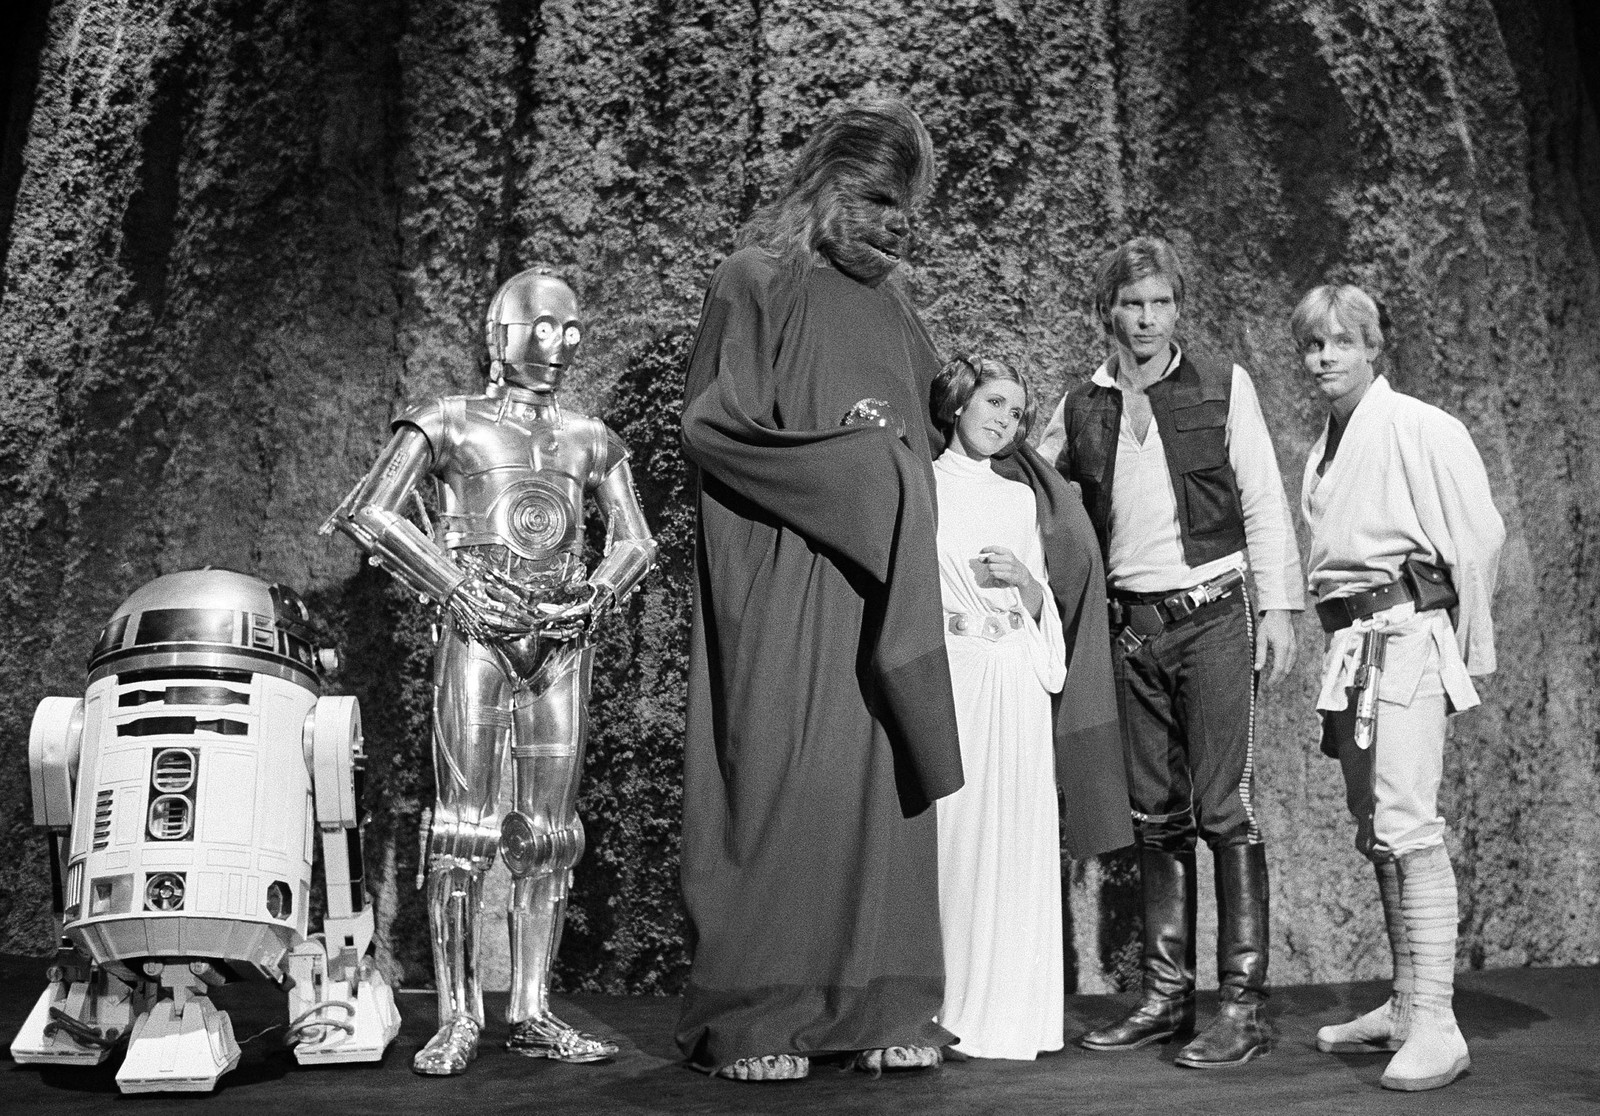 IKONER: De originale karakterene fra «Star Wars» er blitt ikoner. Bildet fra 1978 viser fra venstre skuespillerne Kenny Baker, Anthony Daniels, Peter Mayhew, Carrie Fisher, Harrison Ford og Mark Hamill under filmingen av TV-innslaget «The Star Wars Holiday» i Los Angeles.